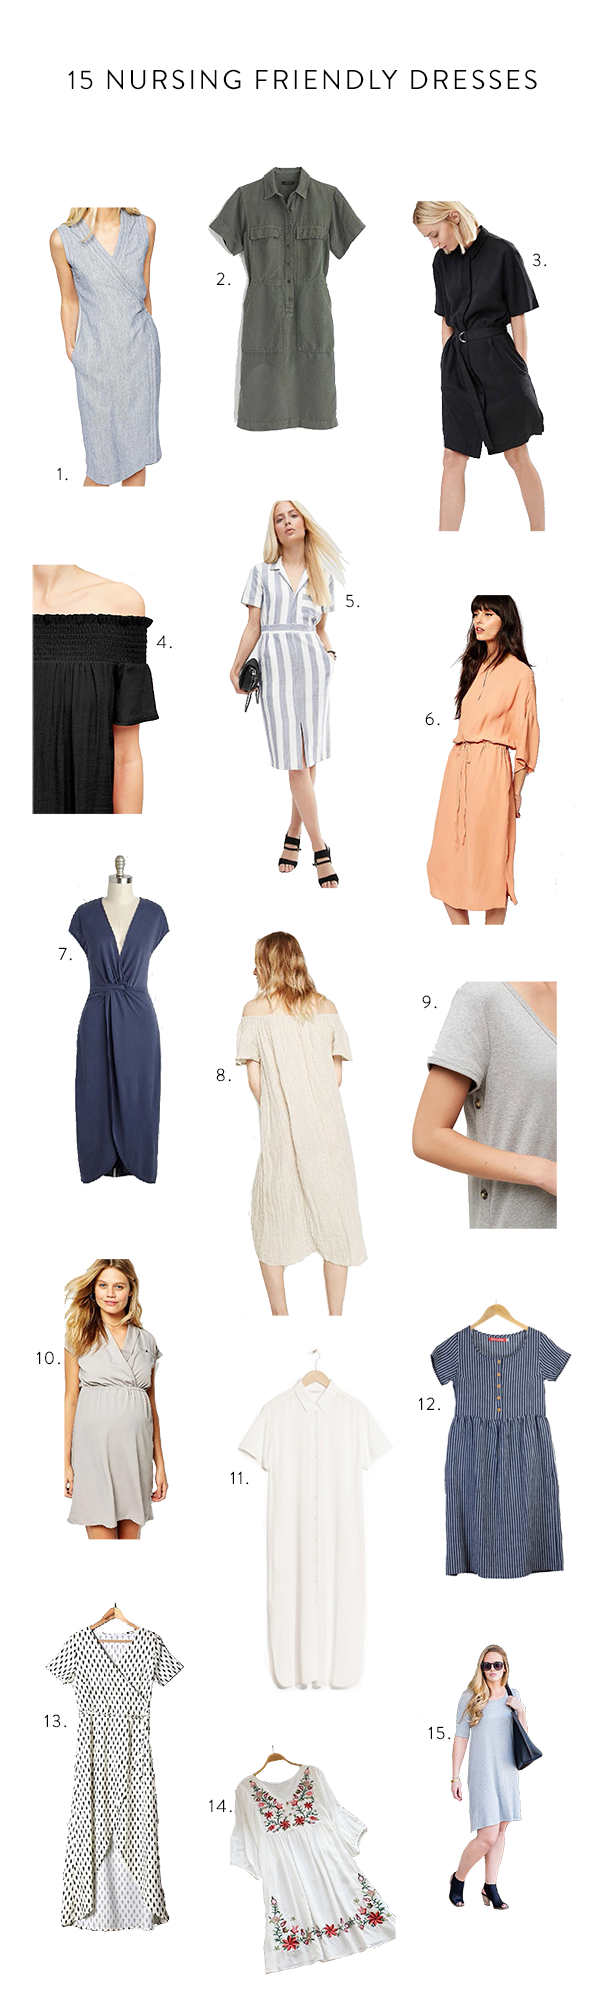 15 Nursing Friendly Summer Dresses Say Yes Nursing Friendly Dress Postpartum Fashion Nursing Friendly Clothes